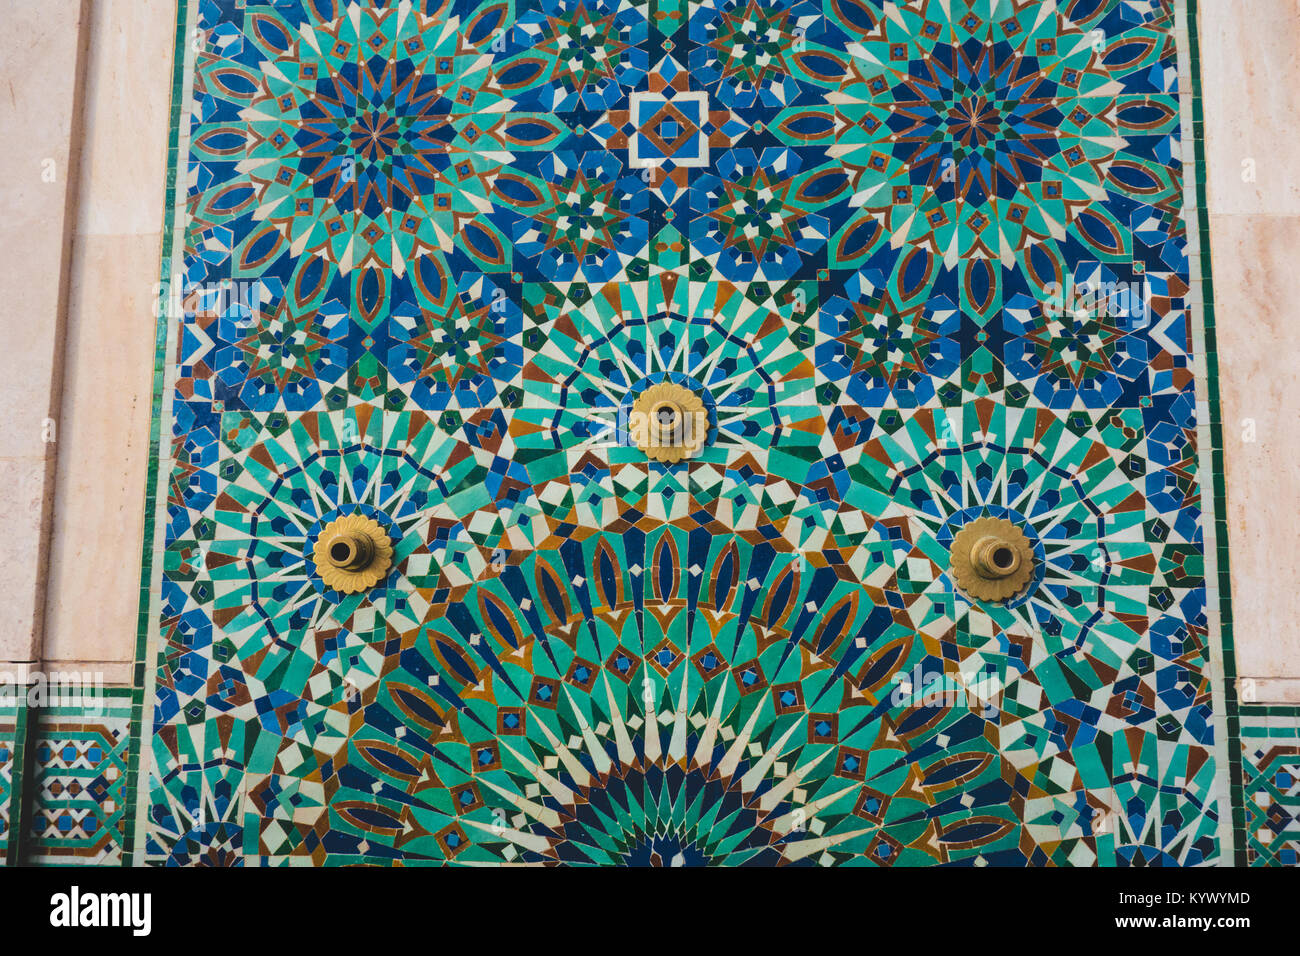 mosaic wall mosque stockfotos mosaic wall mosque bilder alamy. Black Bedroom Furniture Sets. Home Design Ideas